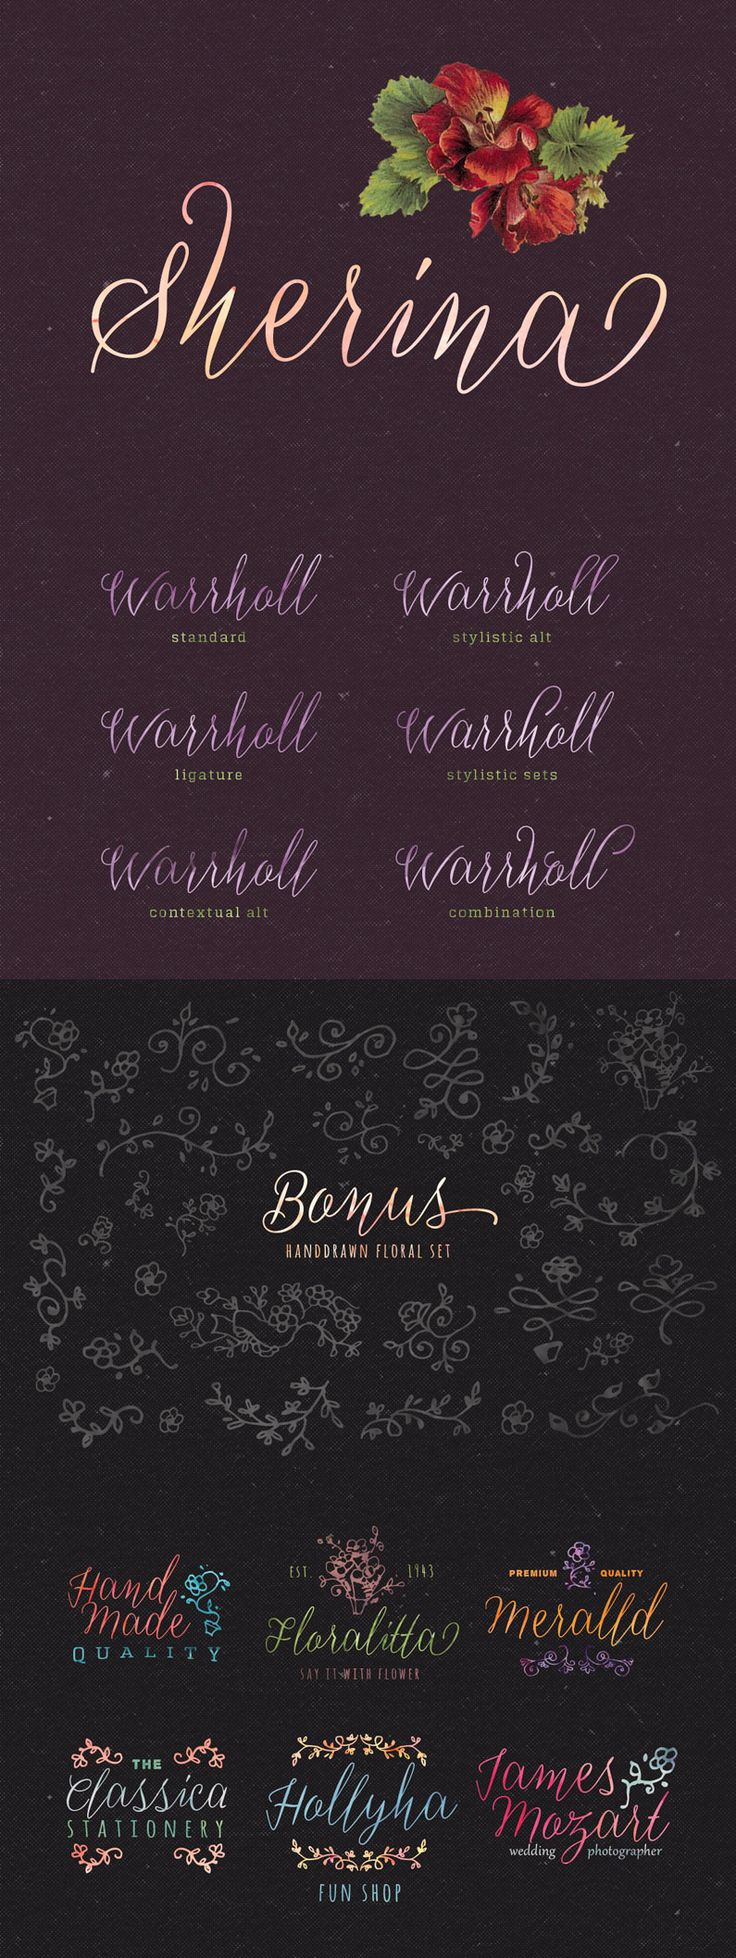 cursive fonts for wedding cards%0A Sherina is hand written script that is fun and casual  It is suitable for wedding  invitation  any greeting cards  retro   vintage design style